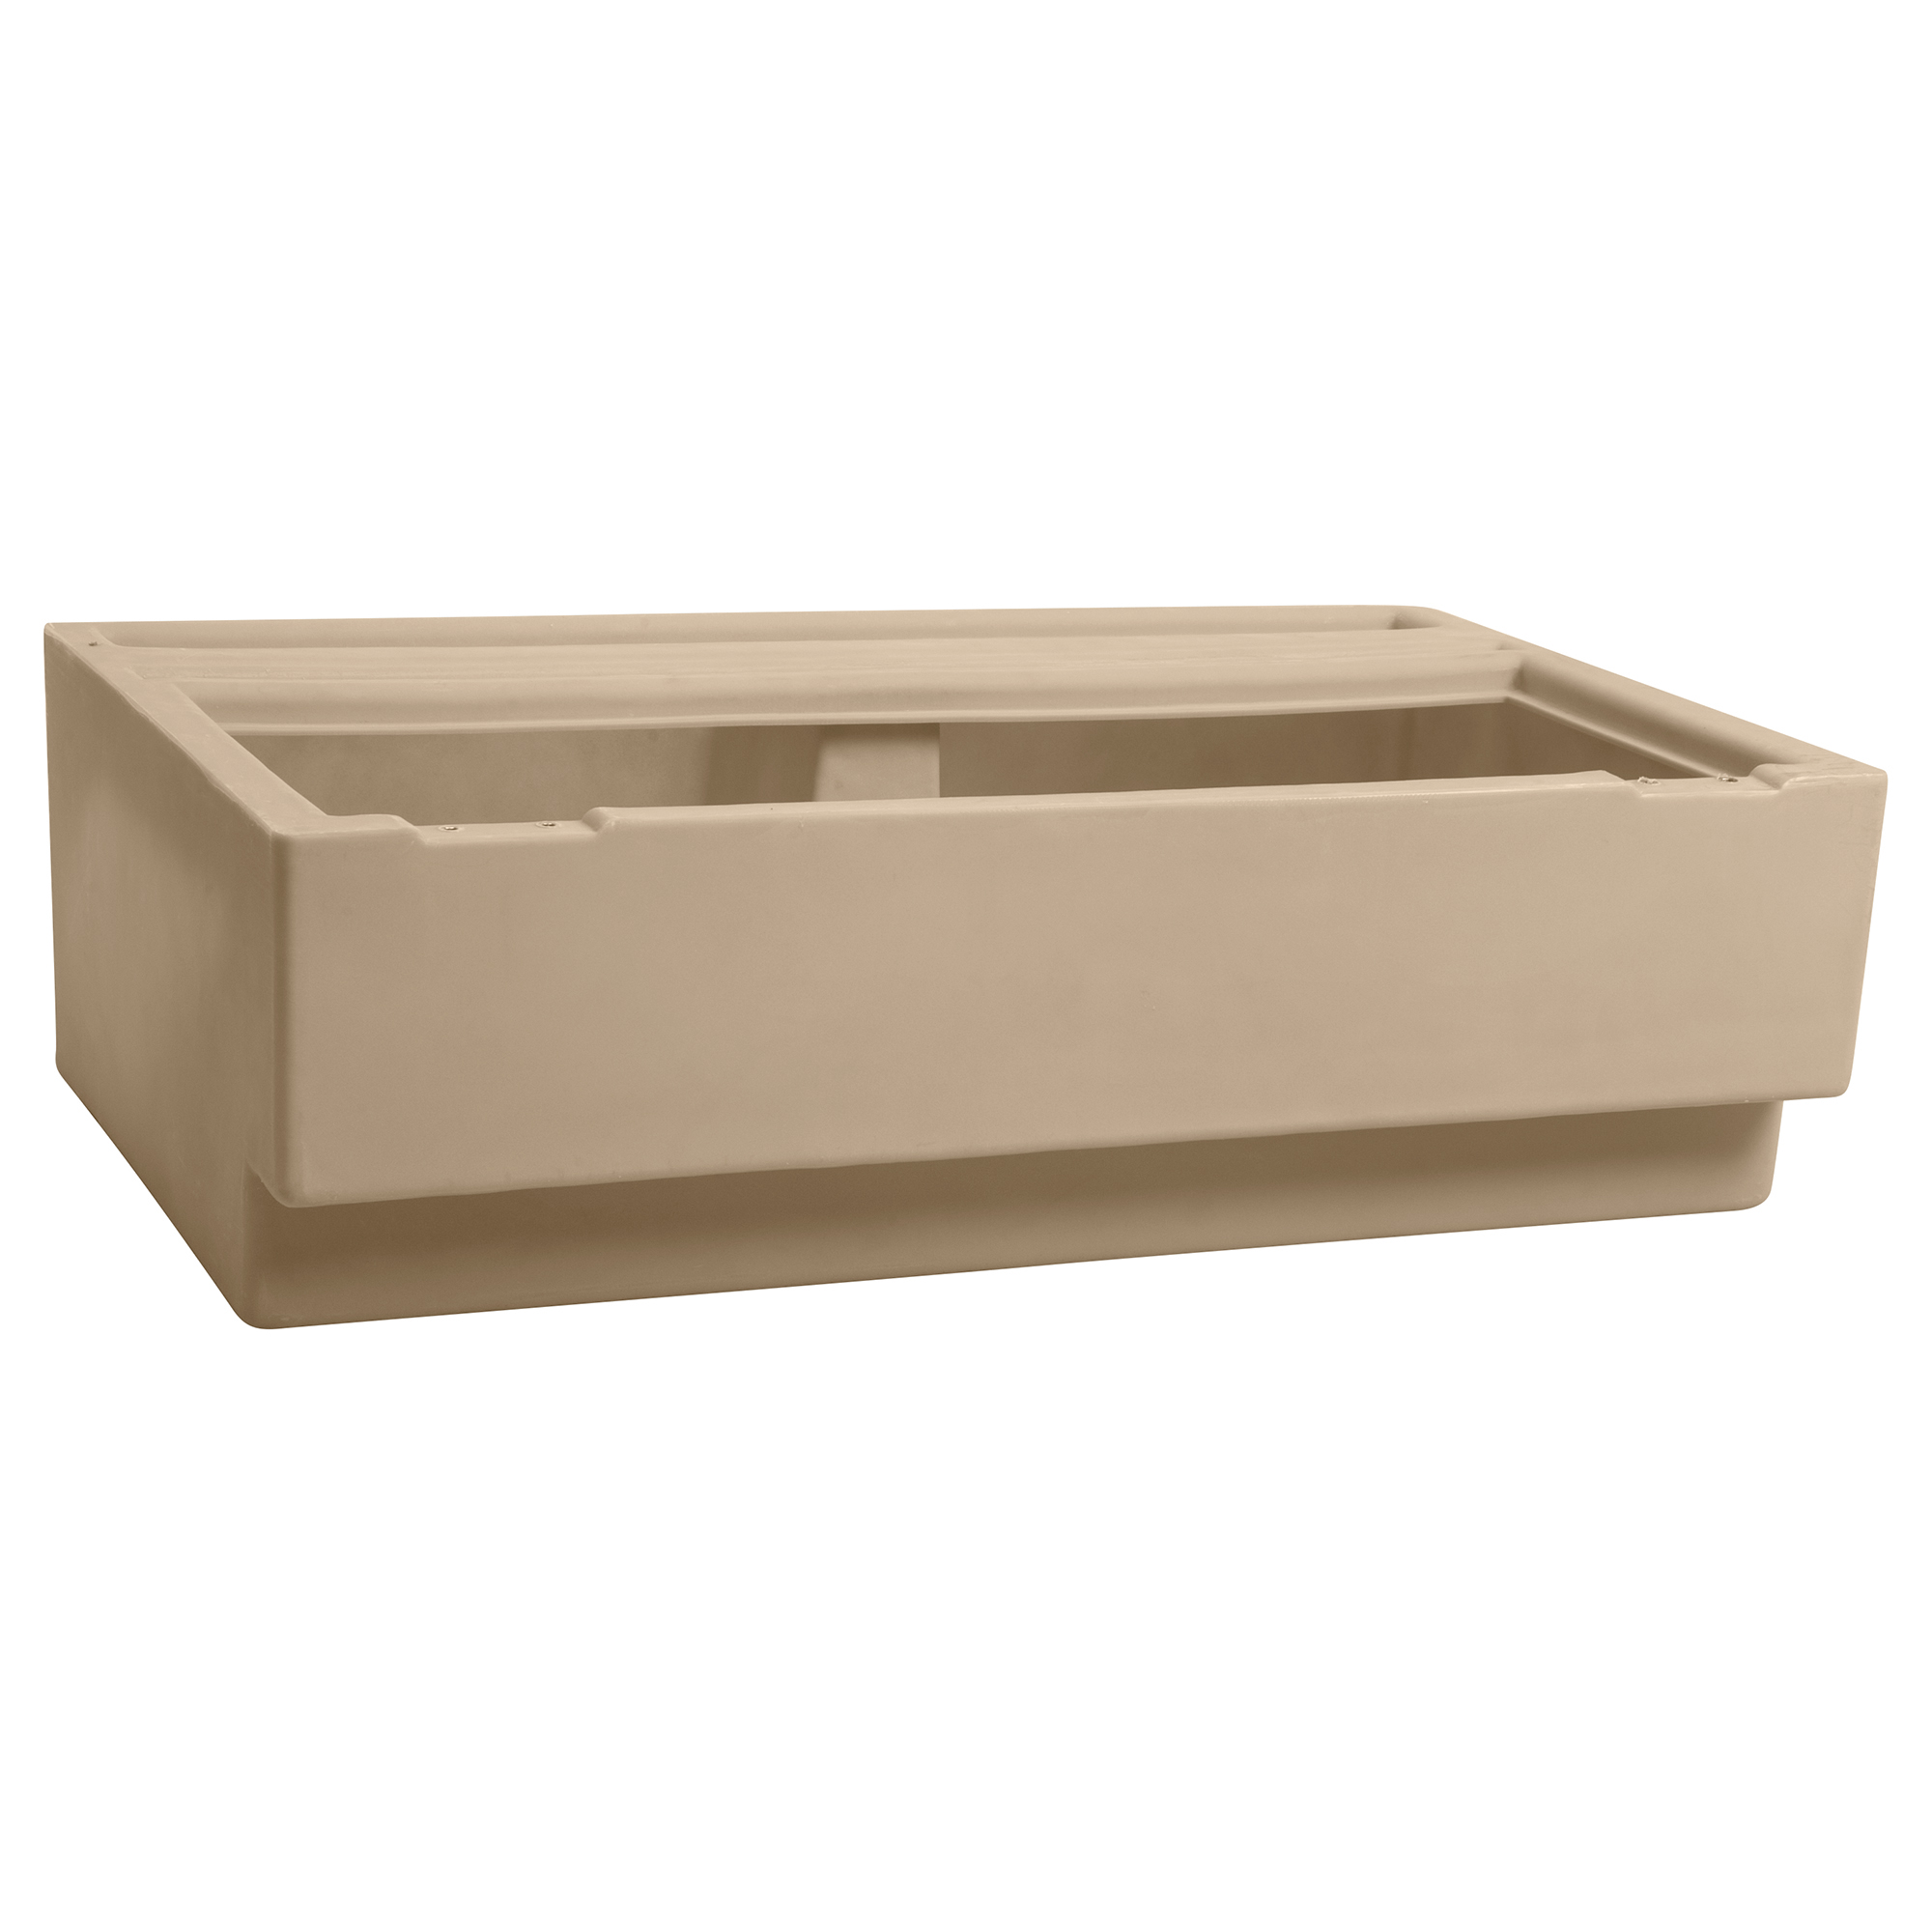 Toonmate Deluxe Pontoon Right-Side Corner Couch Base